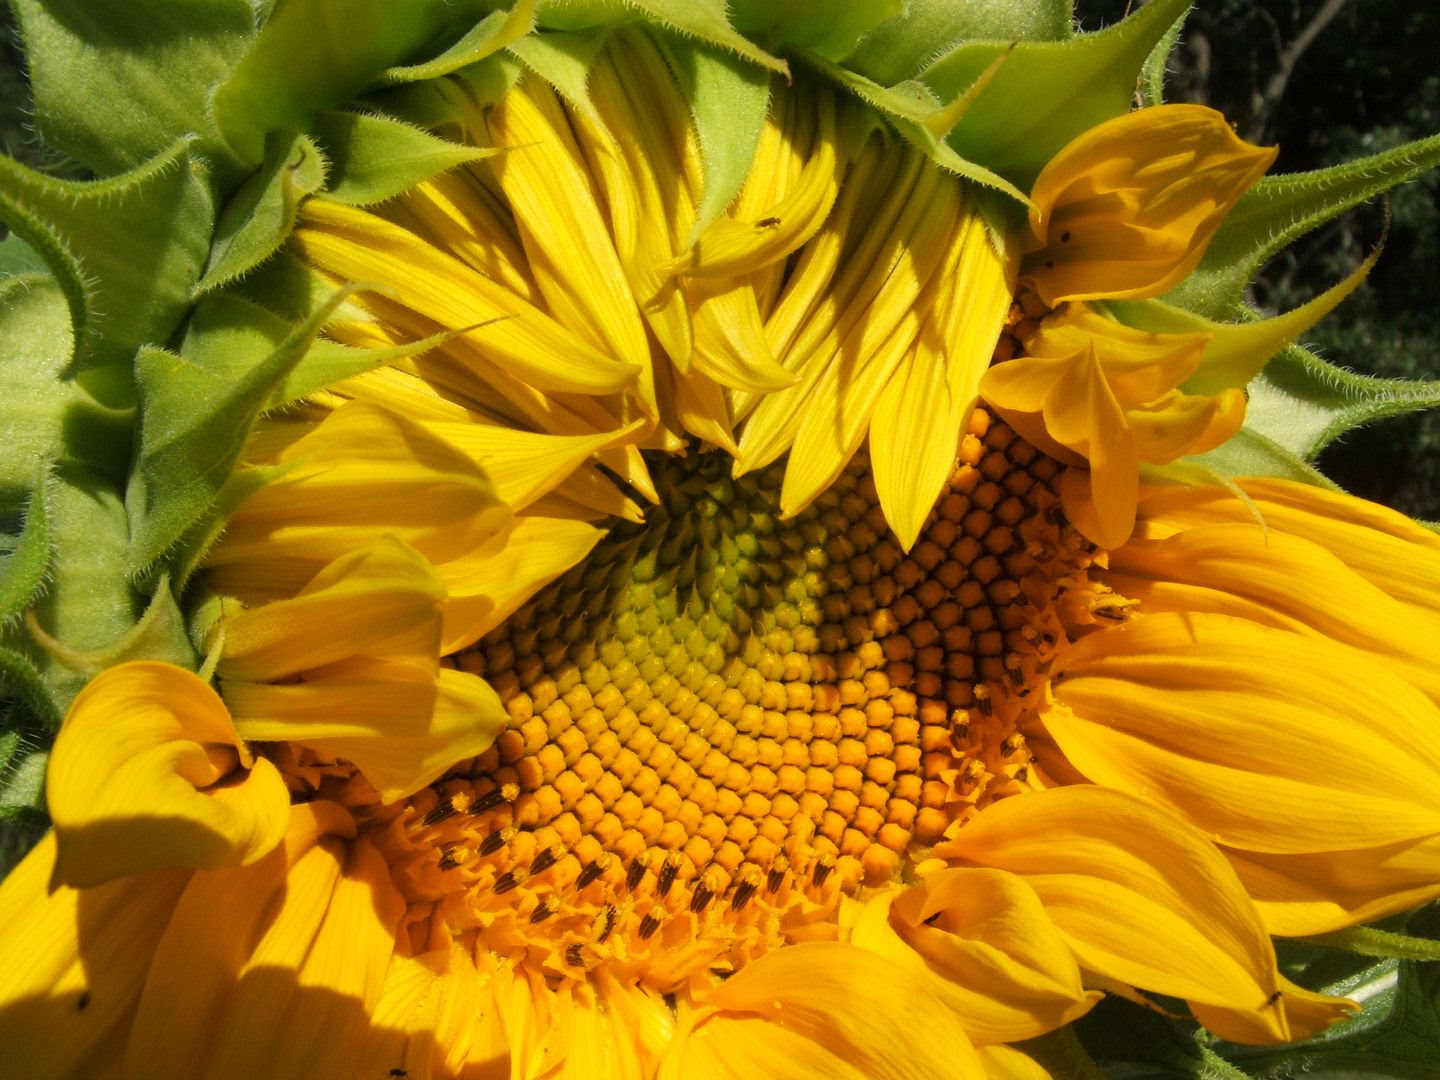 Giant Gray Stripe Sunflower by Angie Ouellette-Tower for godsgrowinggarden.com photo 012_zps7866fe20.jpg